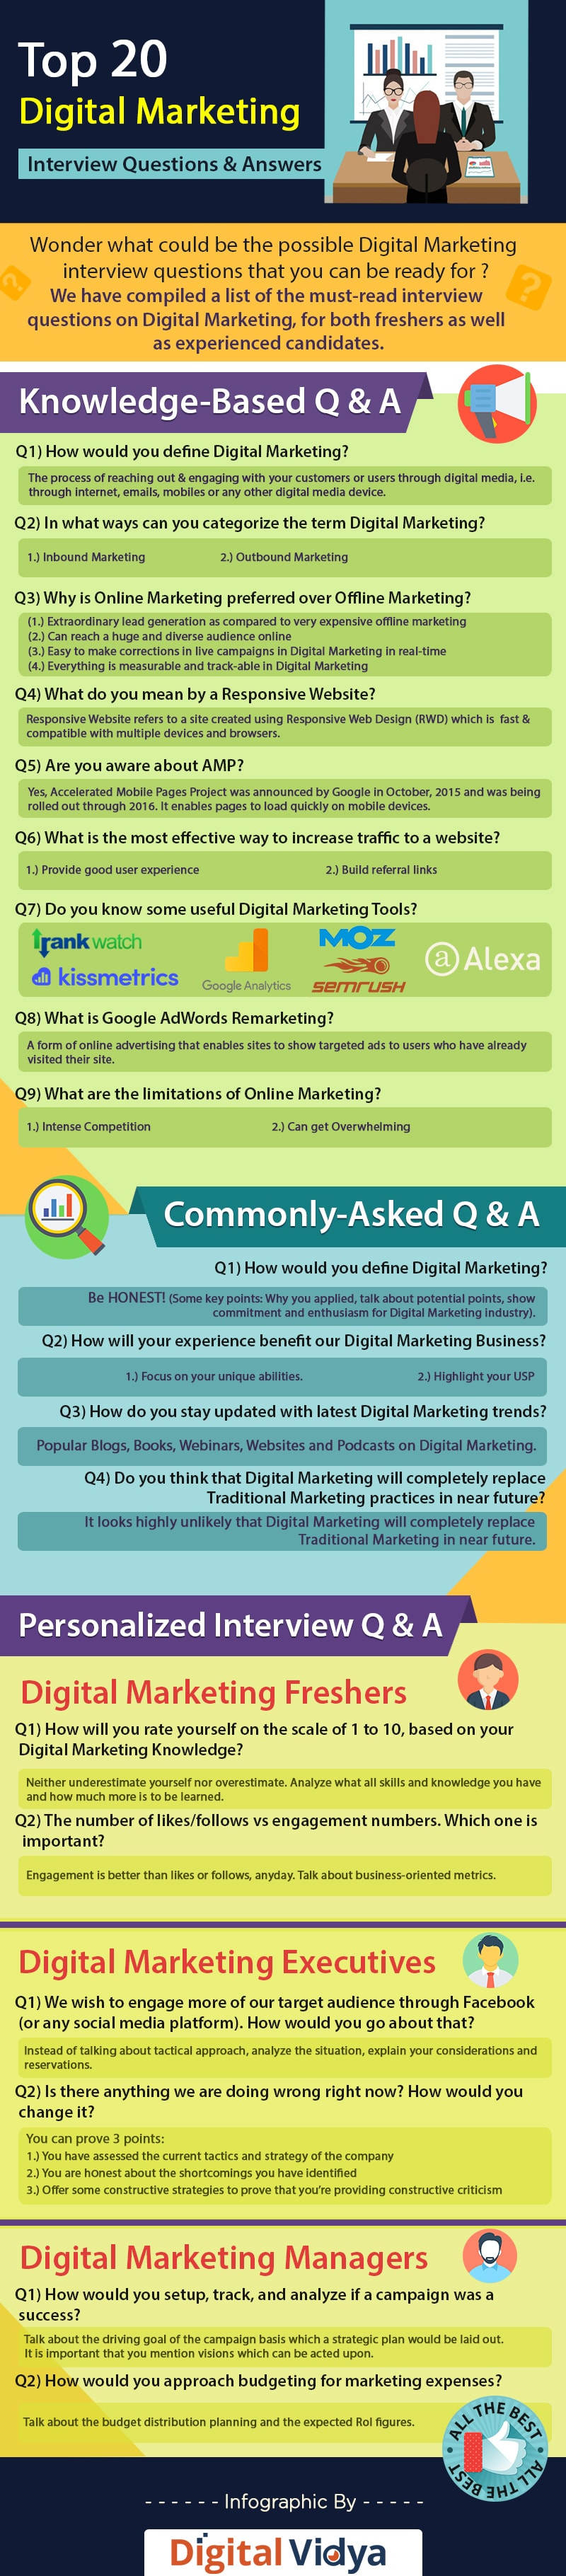 Top digital marketing interview questions and answers guide